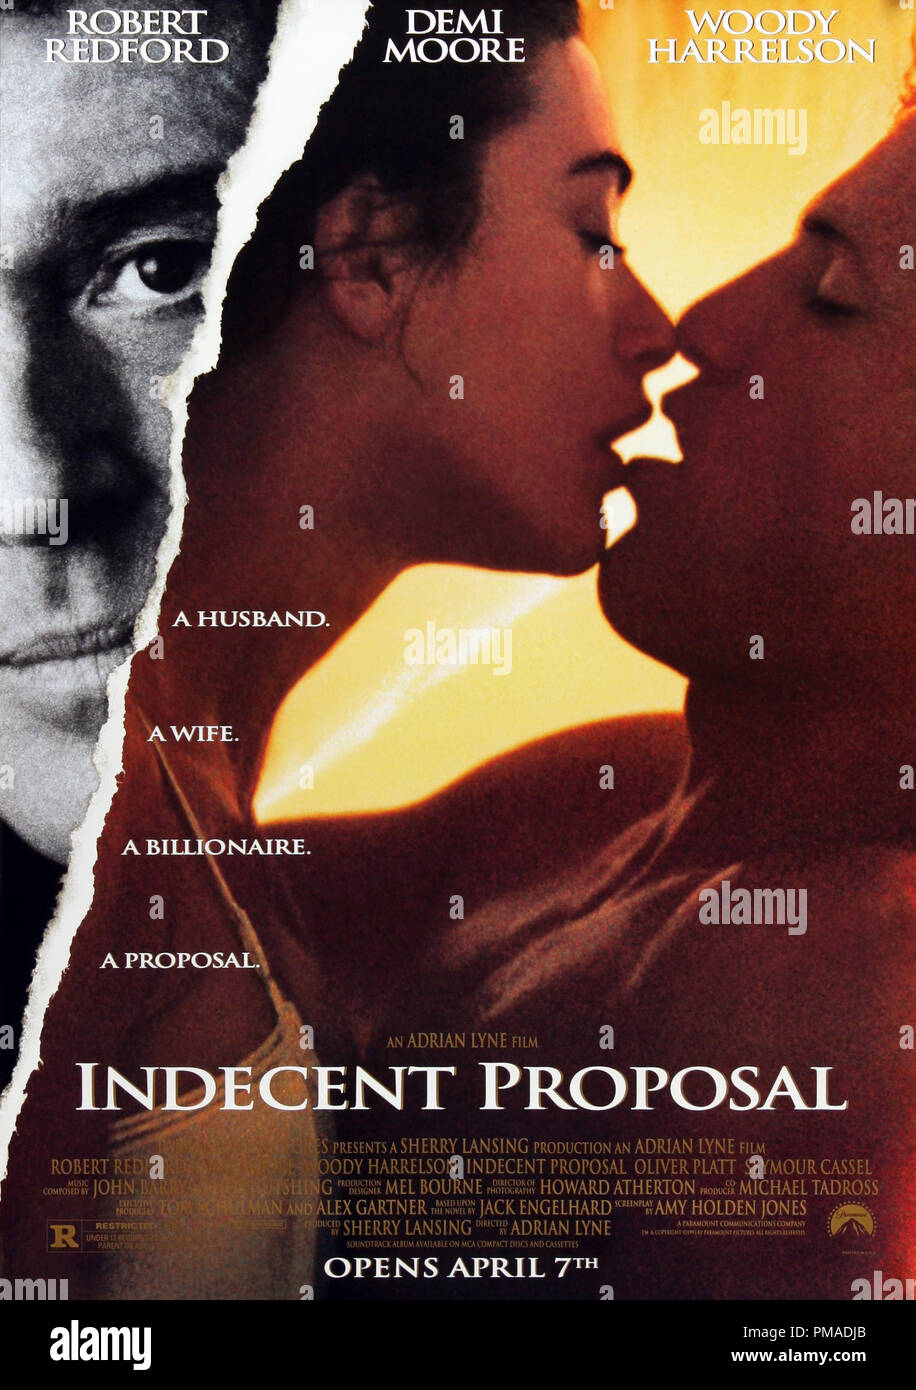 'Indecent Proposal' - US Poster 1993 Paramount Pictures  Robert Redford, Demi Moore, Woody Harrelson  File Reference # 32509_202THA - Stock Image